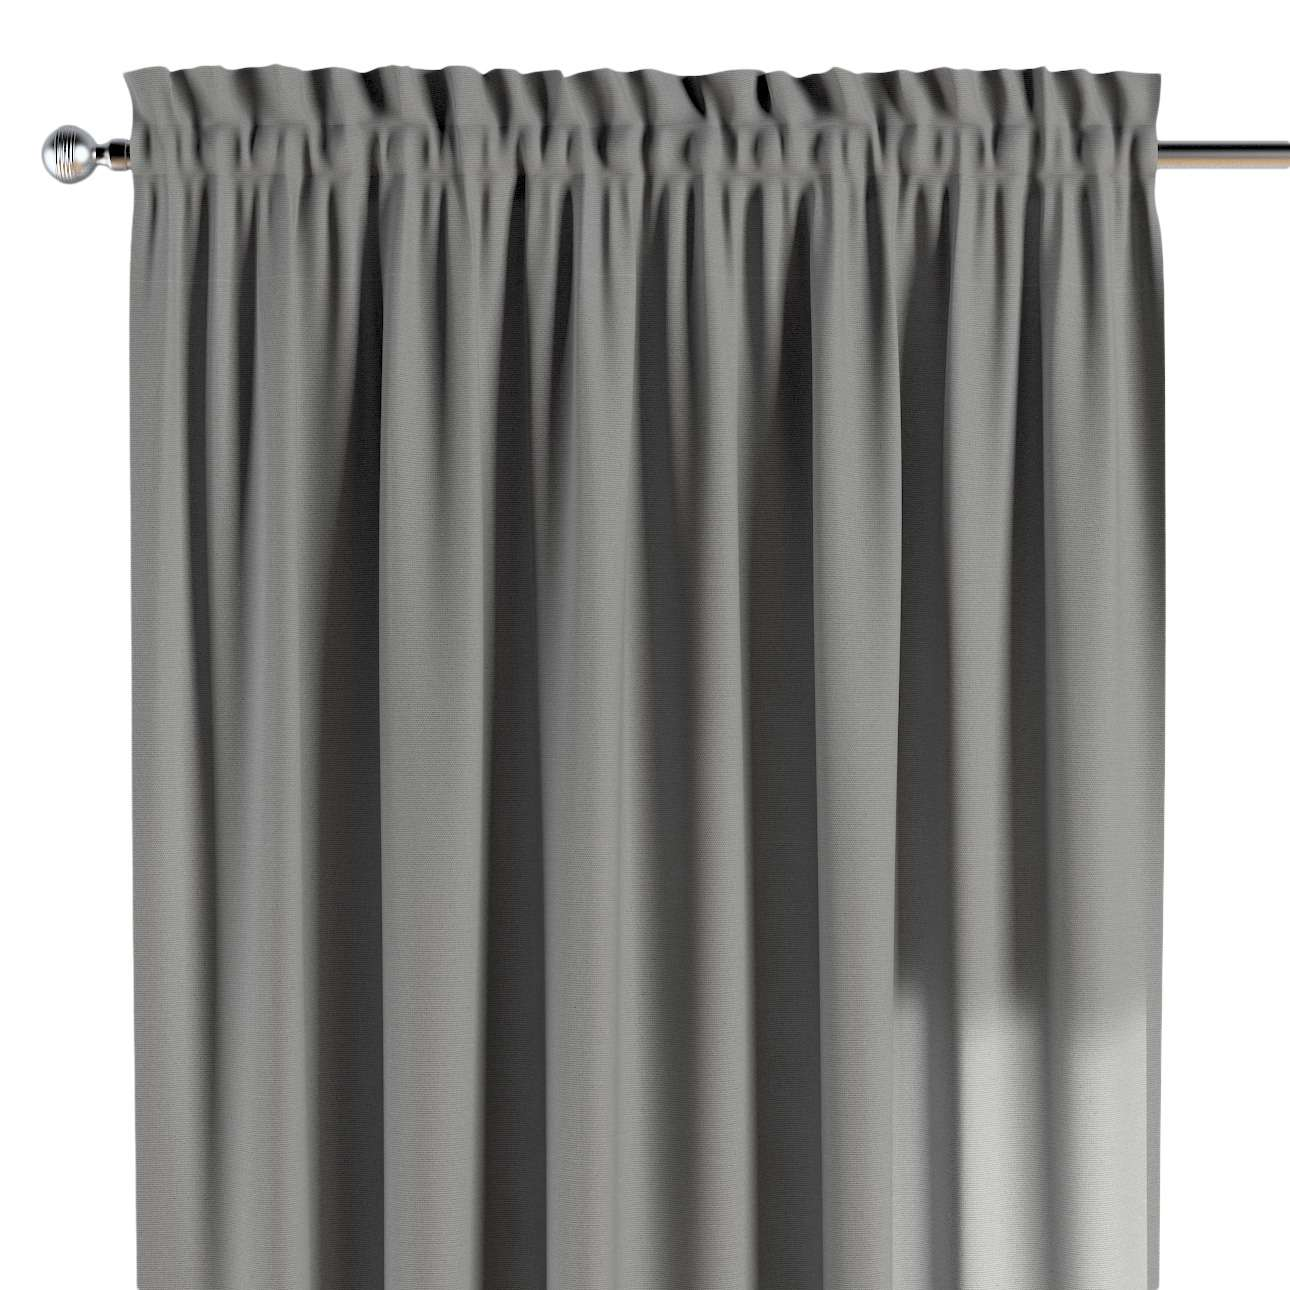 Slot and frill curtains in collection Happiness, fabric: 133-24